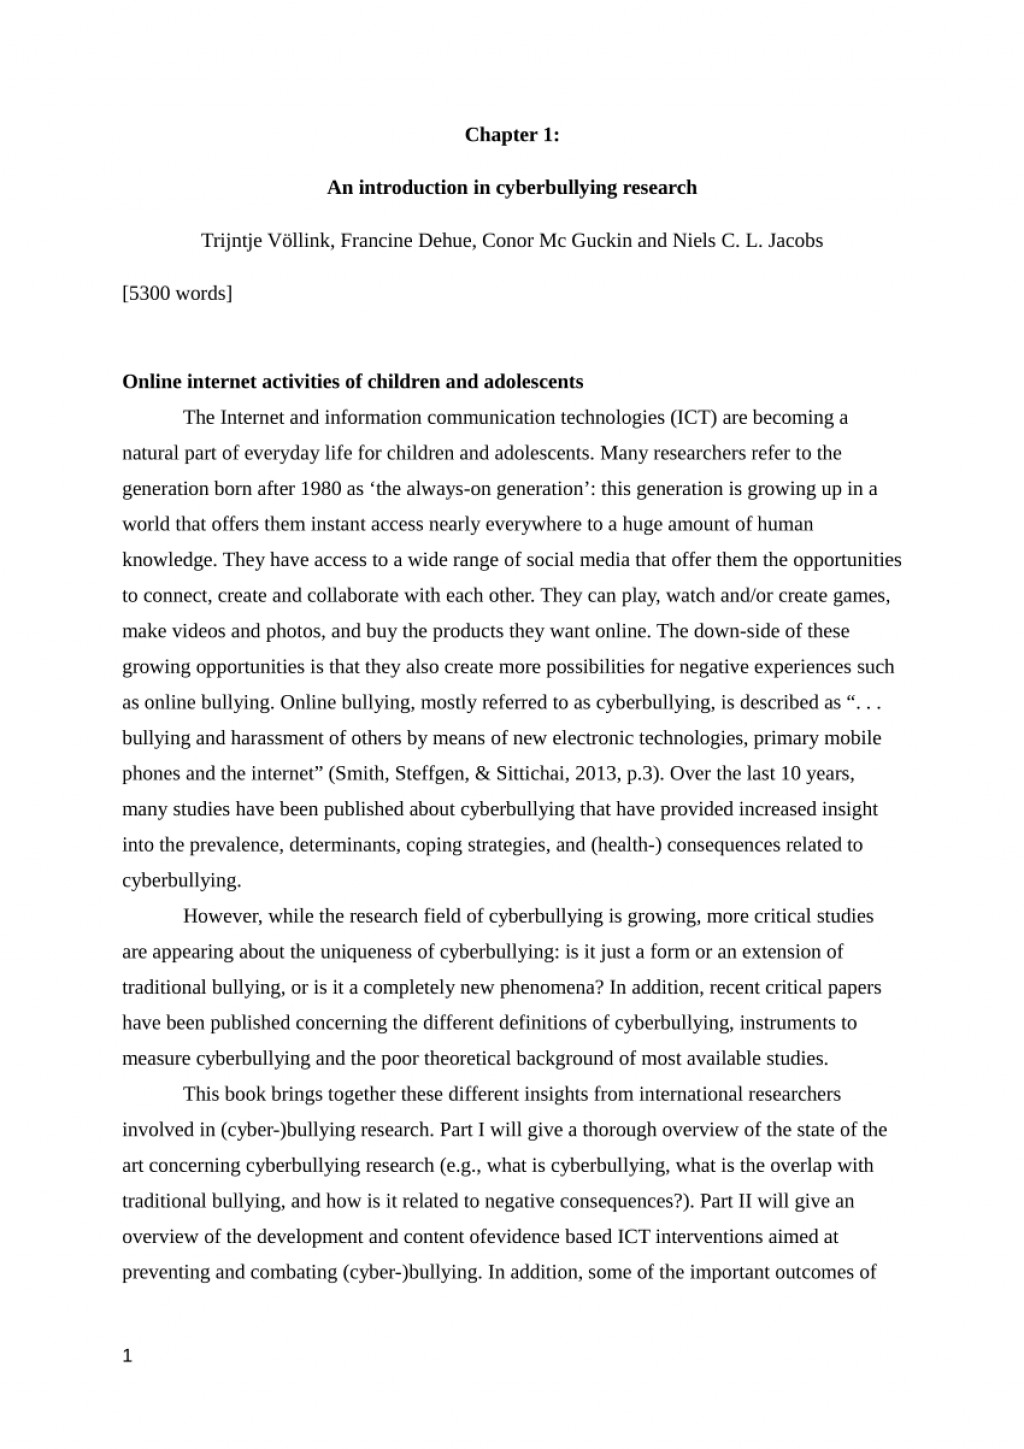 001 Cyberbullying Research Essay Paper Sensational Example Questions Large